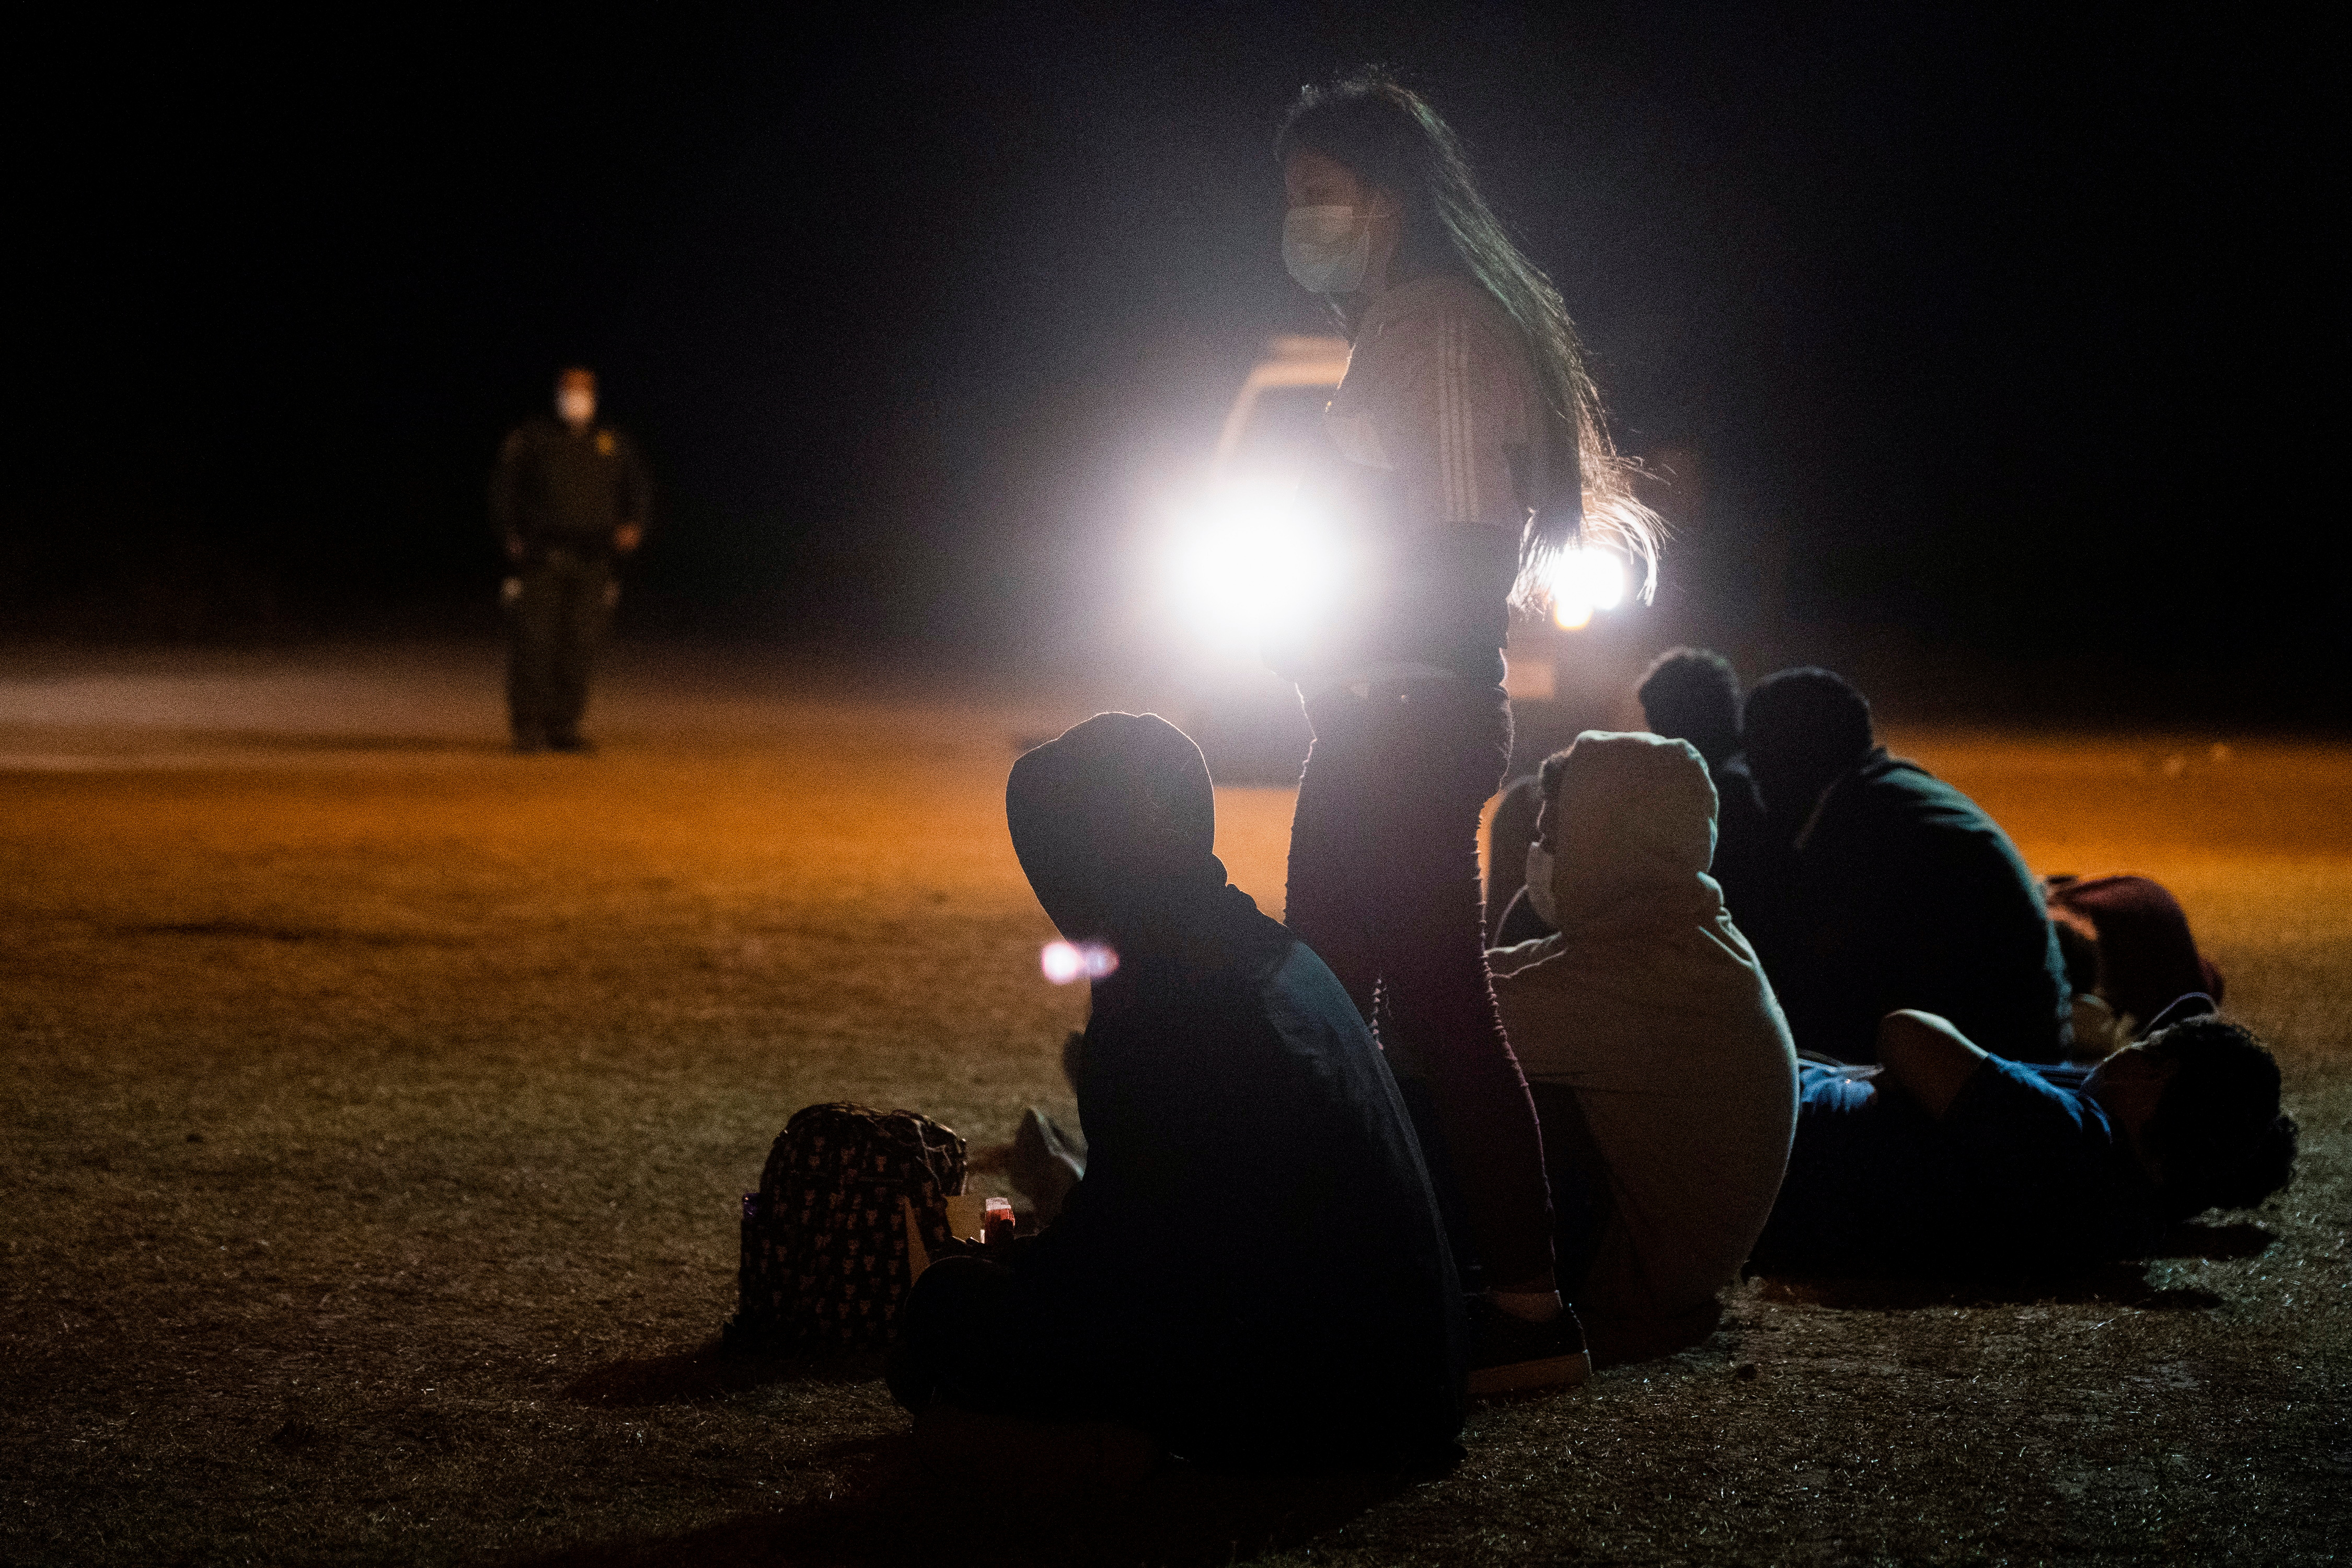 Unaccompanied minor migrants wait to be transported by the U.S. Border Patrols after crossing the Rio Grande River into the United States from Mexico in La Joya, Texas, U.S., April 7, 2021. REUTERS/Go Nakamura